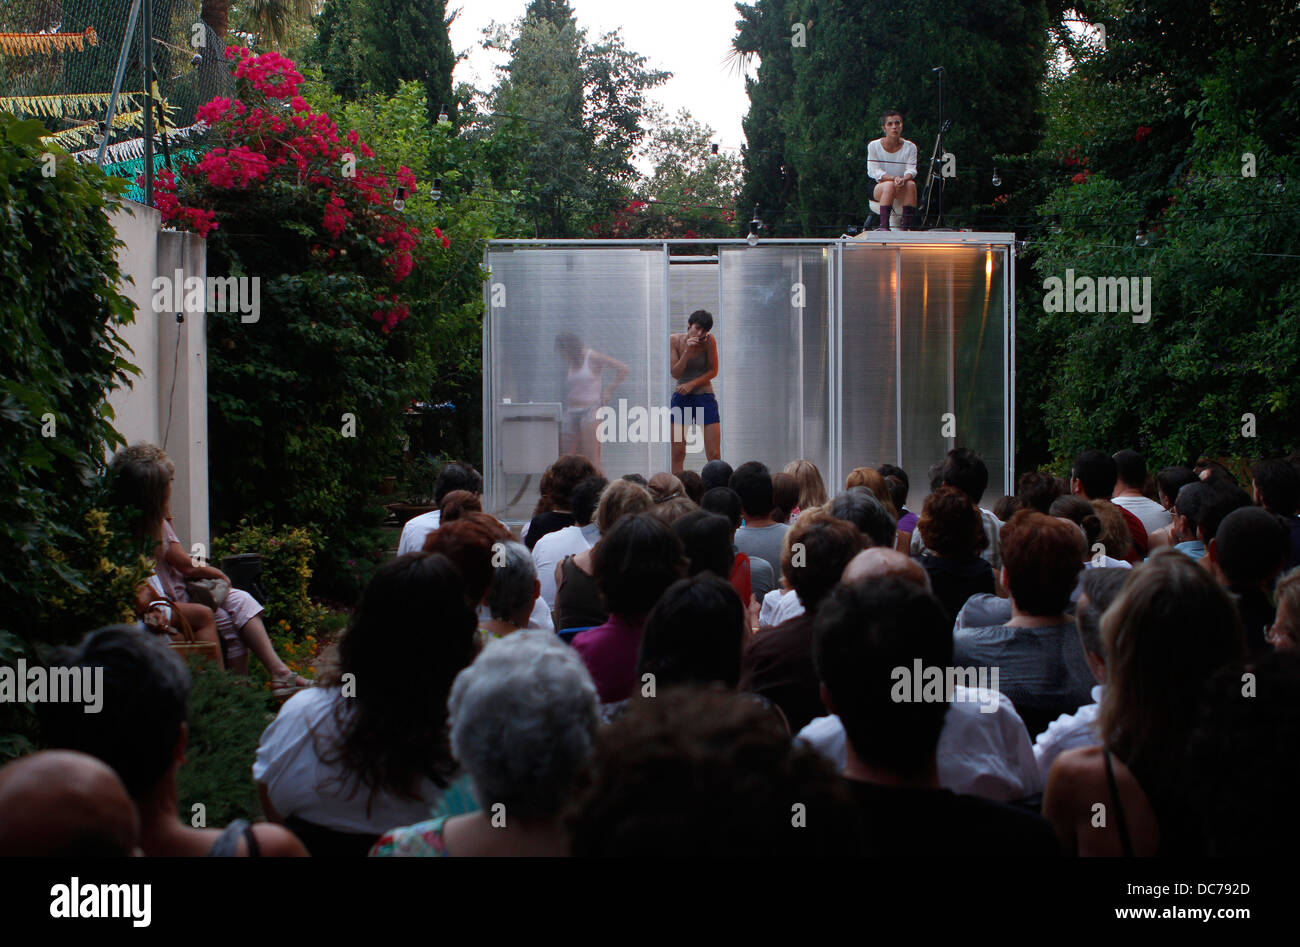 Private theater representation at a garden in the island of Majorca, Spain Stock Photo